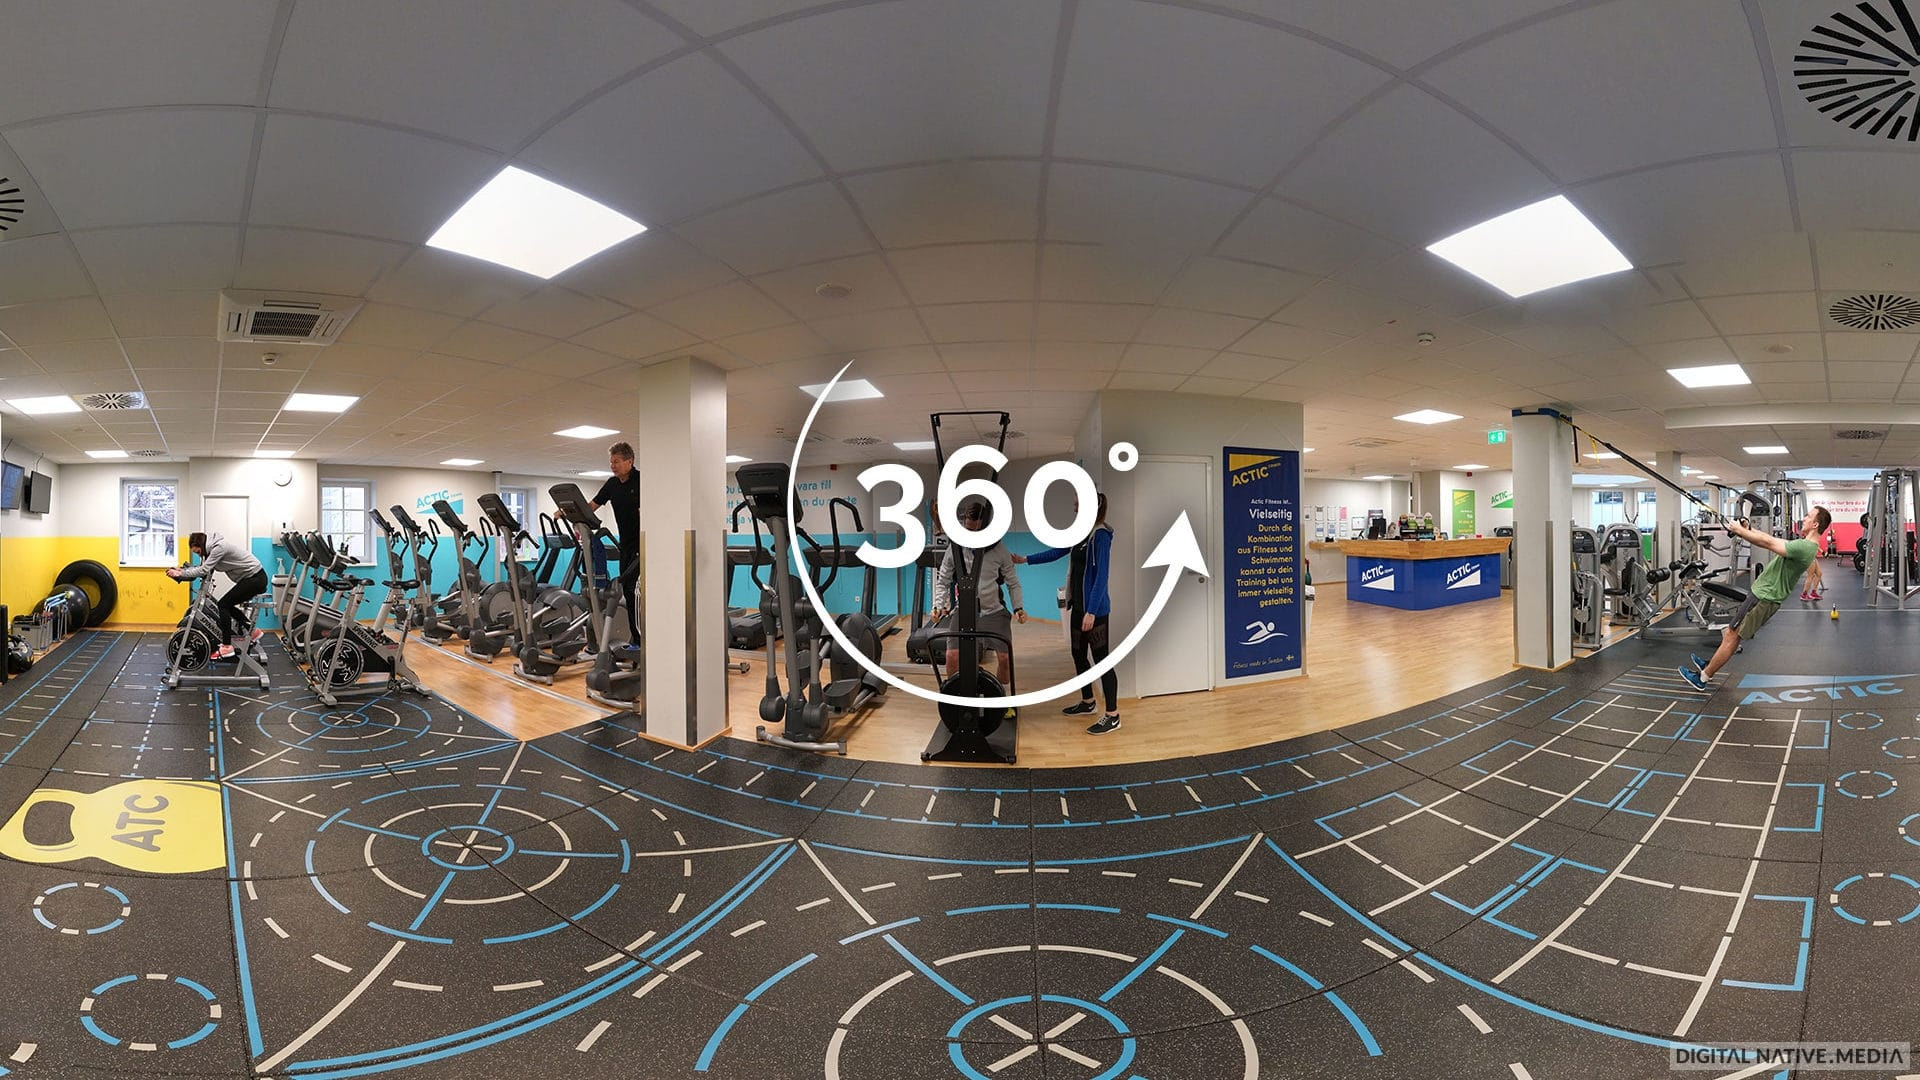 360°-Video vom Fitnessstudio Actic in Bayreuth gedreht von Digital Native Media